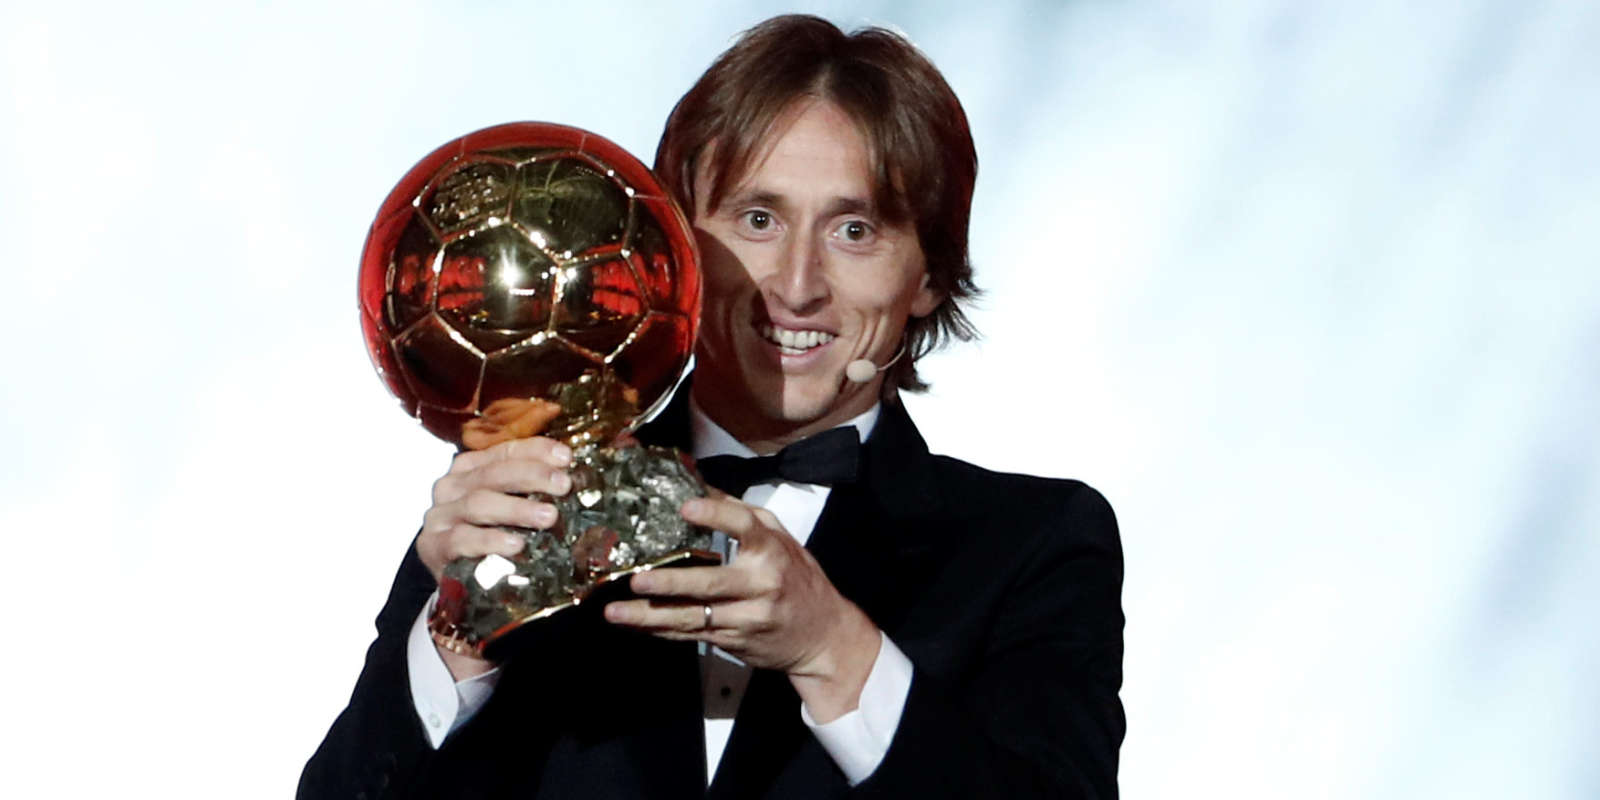 Le Croate Luka Modric remporte le Ballon d'or 2018.